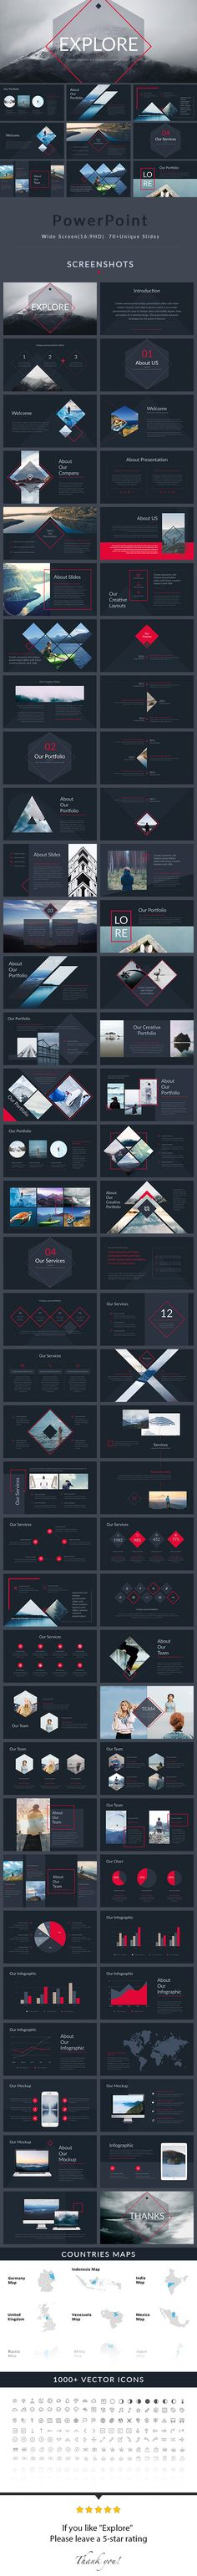 Explore - PowerPoint Presentation Template - Creative PowerPoint Templates Download here: https://graphicriver.net/item/explore-powerpoint-presentation-template/19892290?ref=classicdesignp